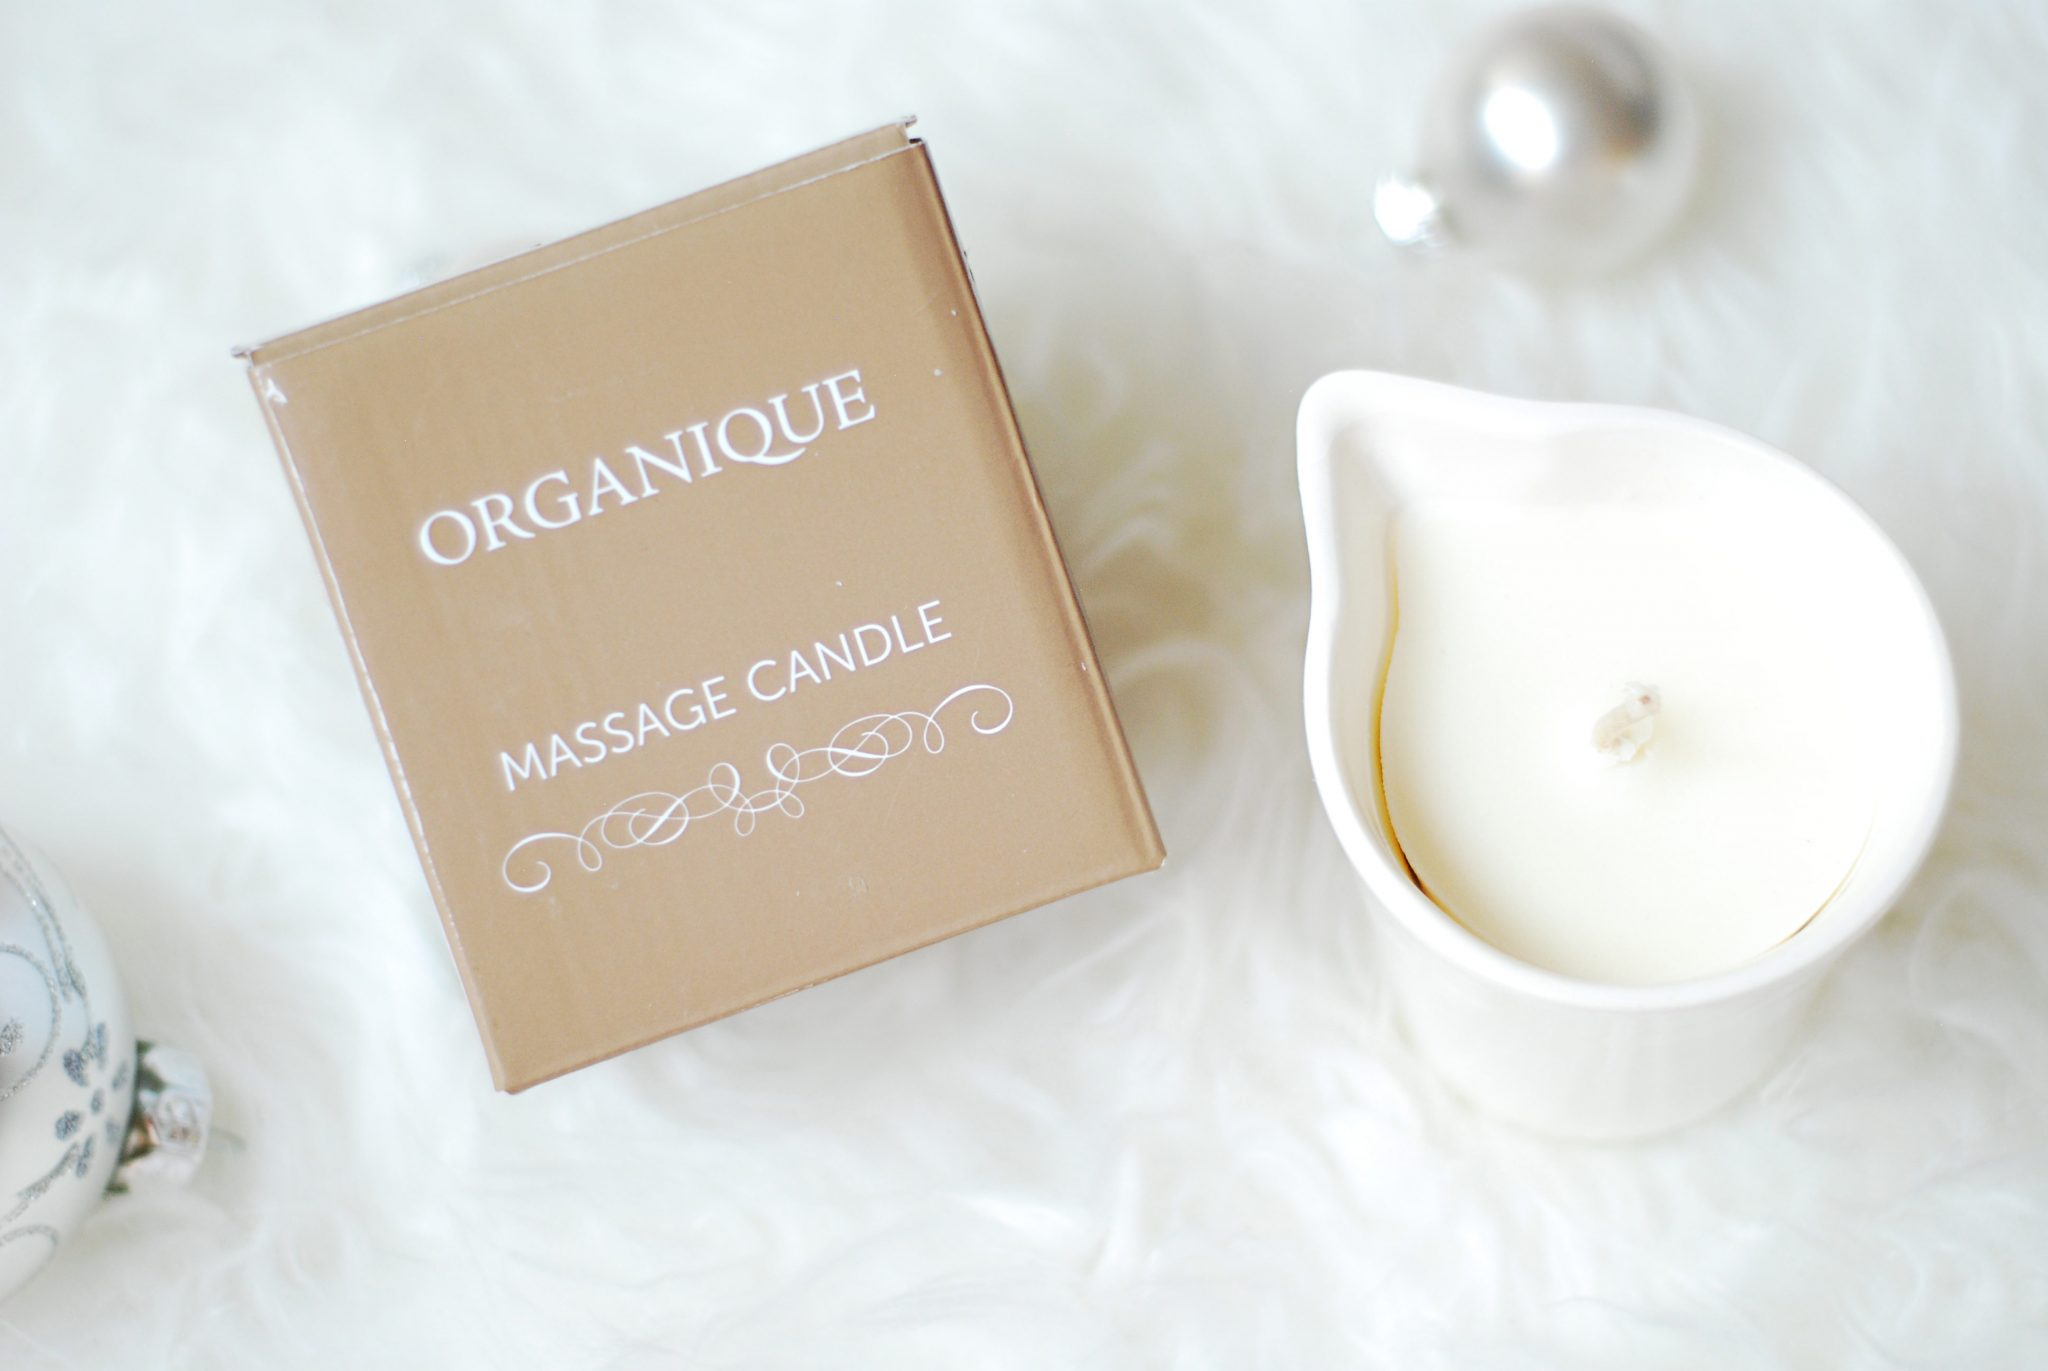 organique_candle_massage